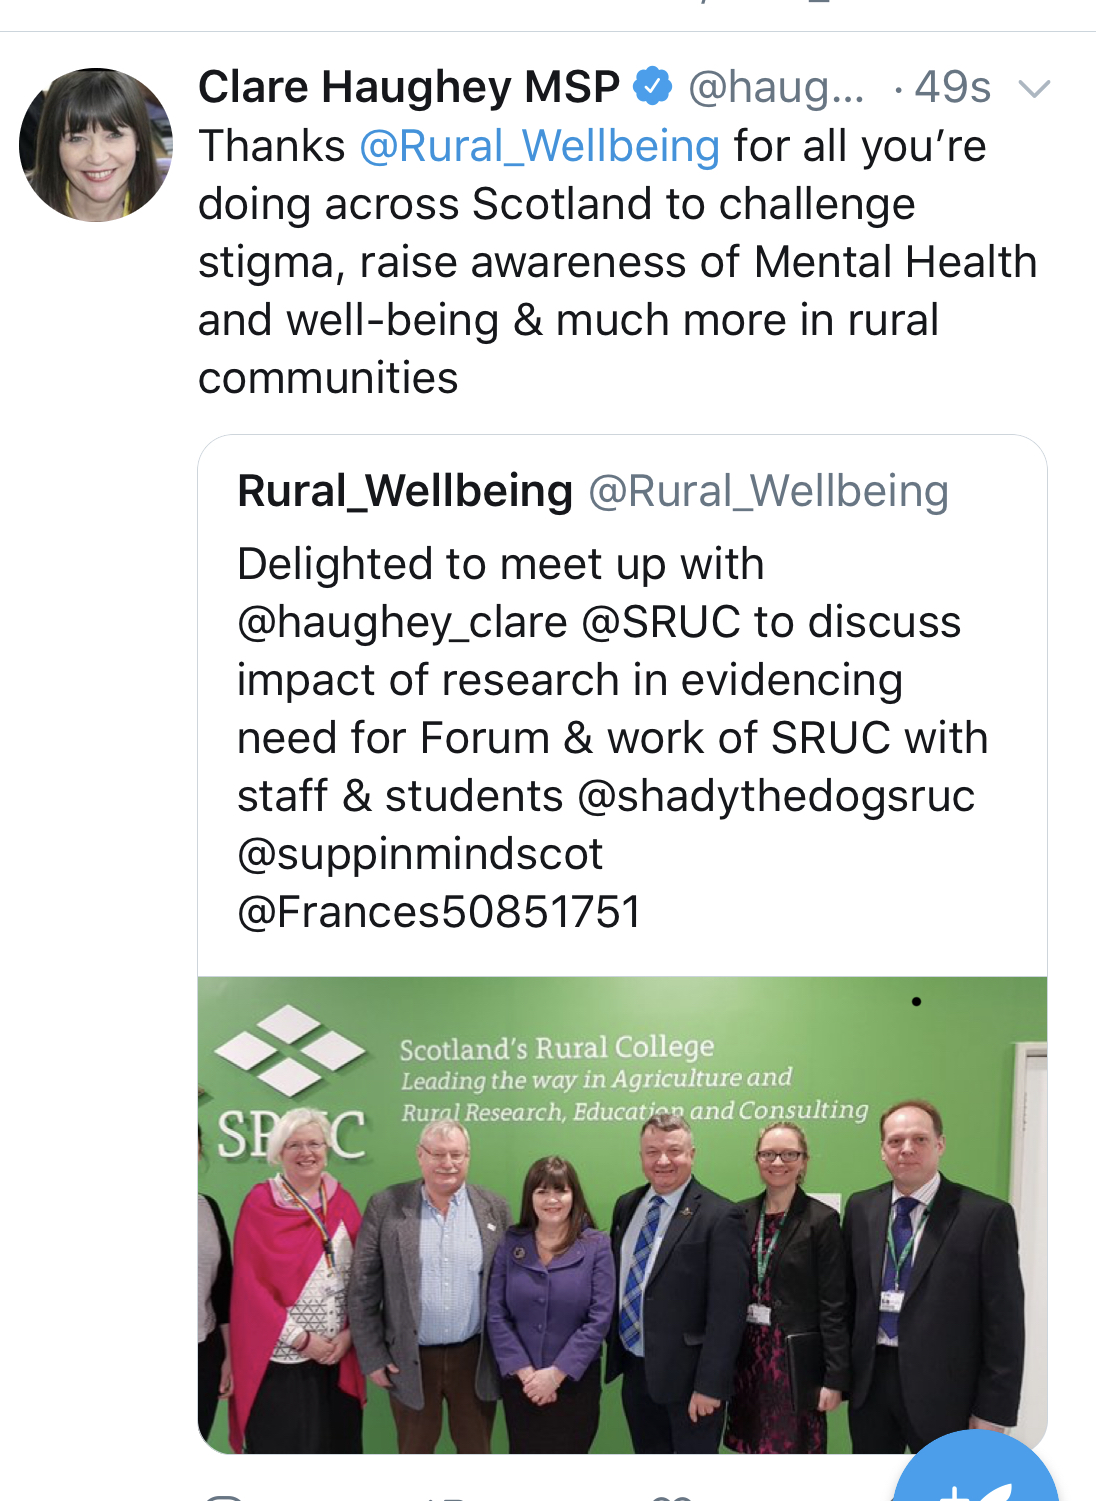 Scottish Government Minister Clare Haughey MSP thanks National Rural Mental Health Forum for its work